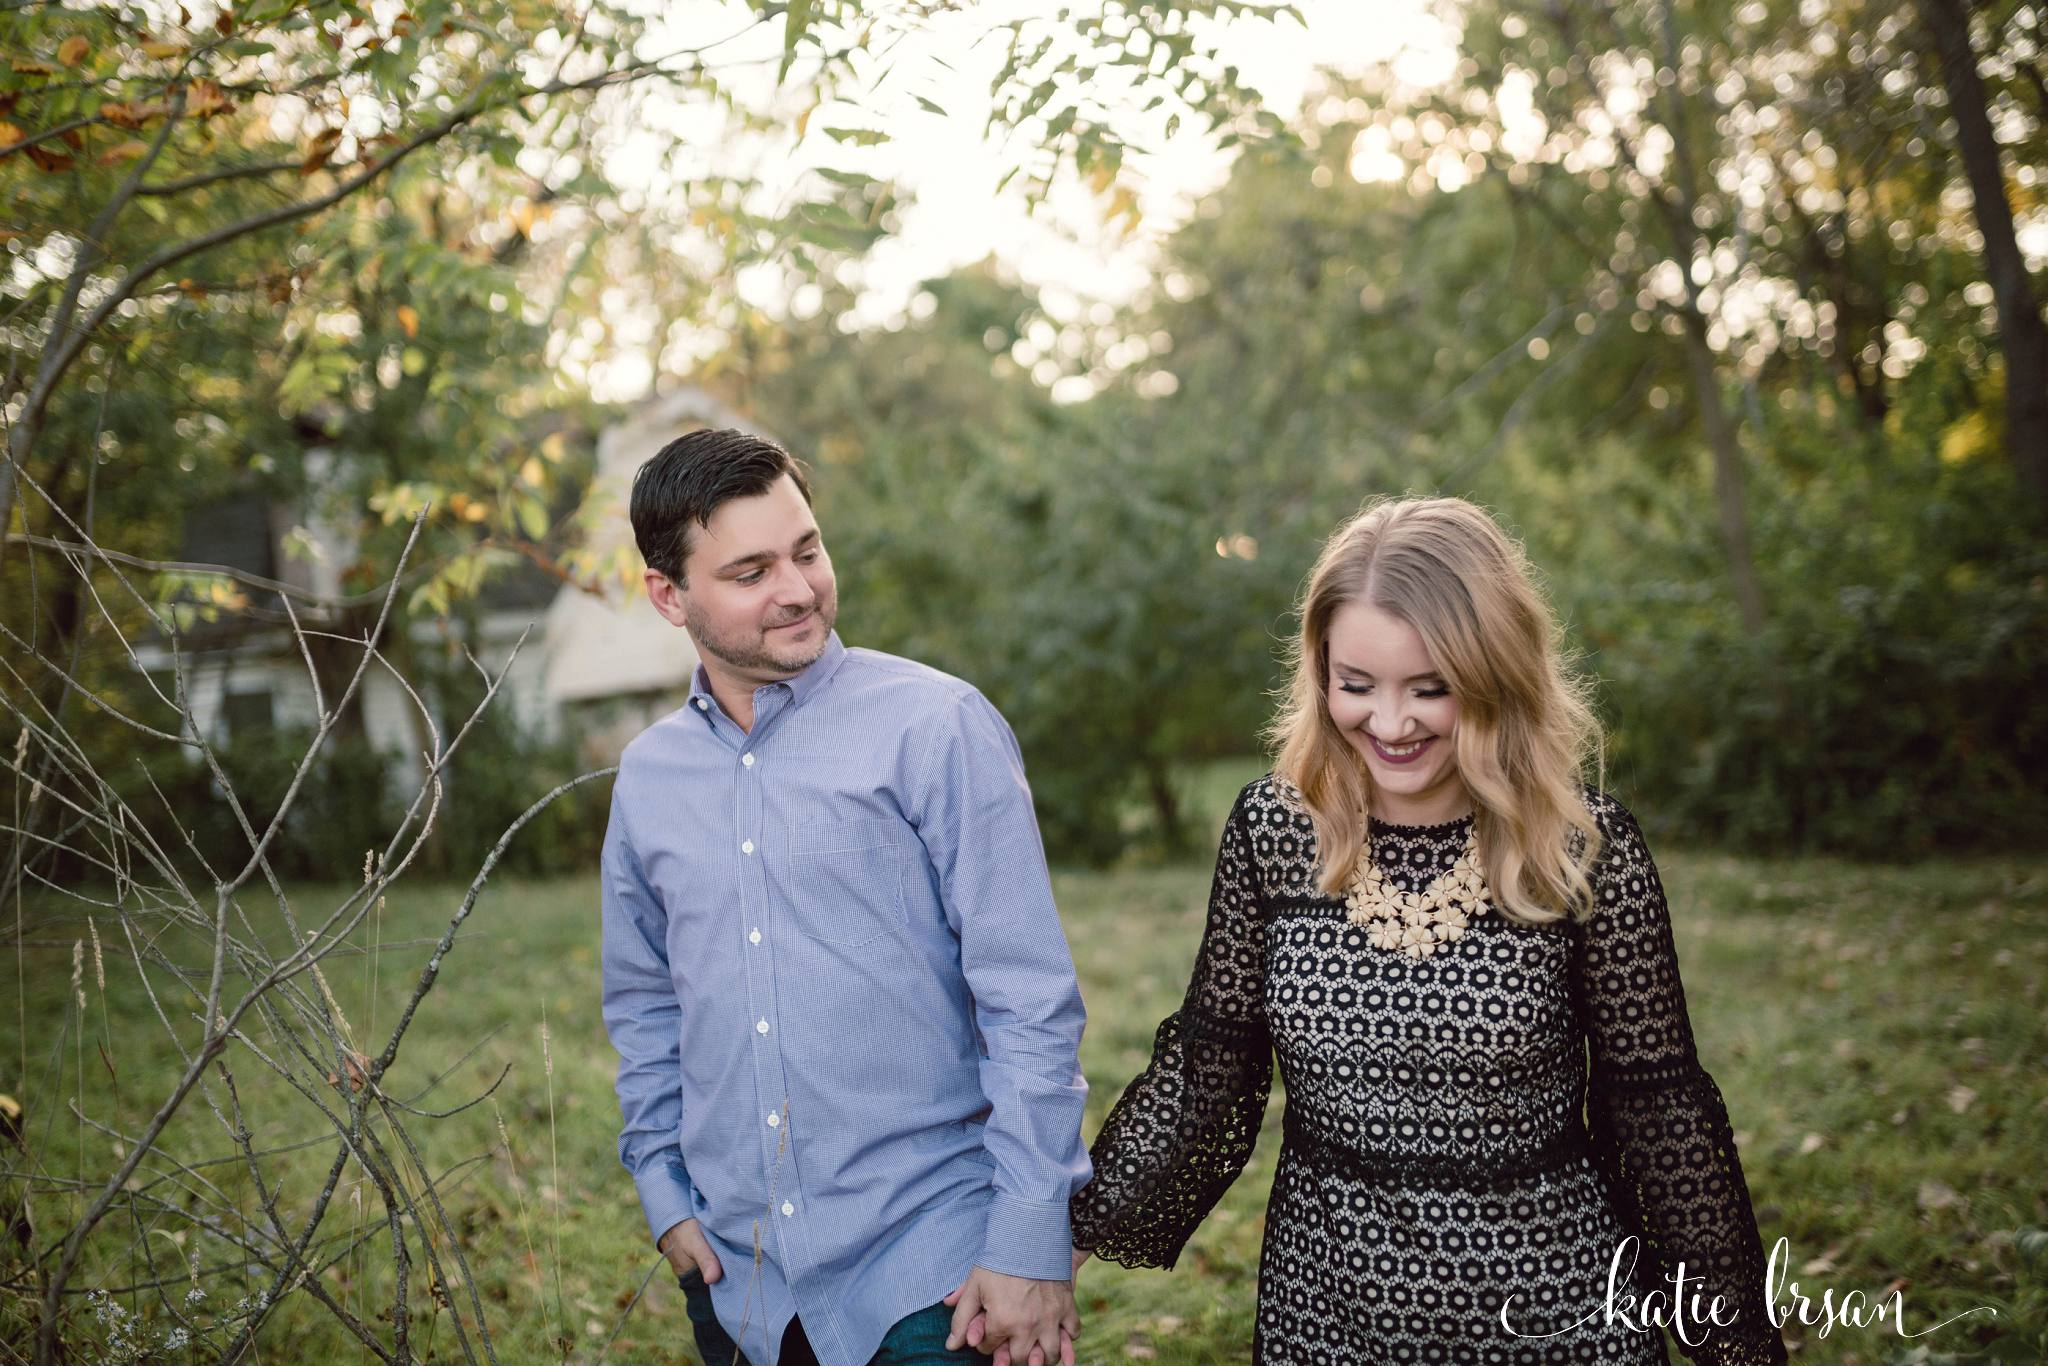 Mokena_EngagementSession_RuffledFeathers_Wedding_0948.jpg